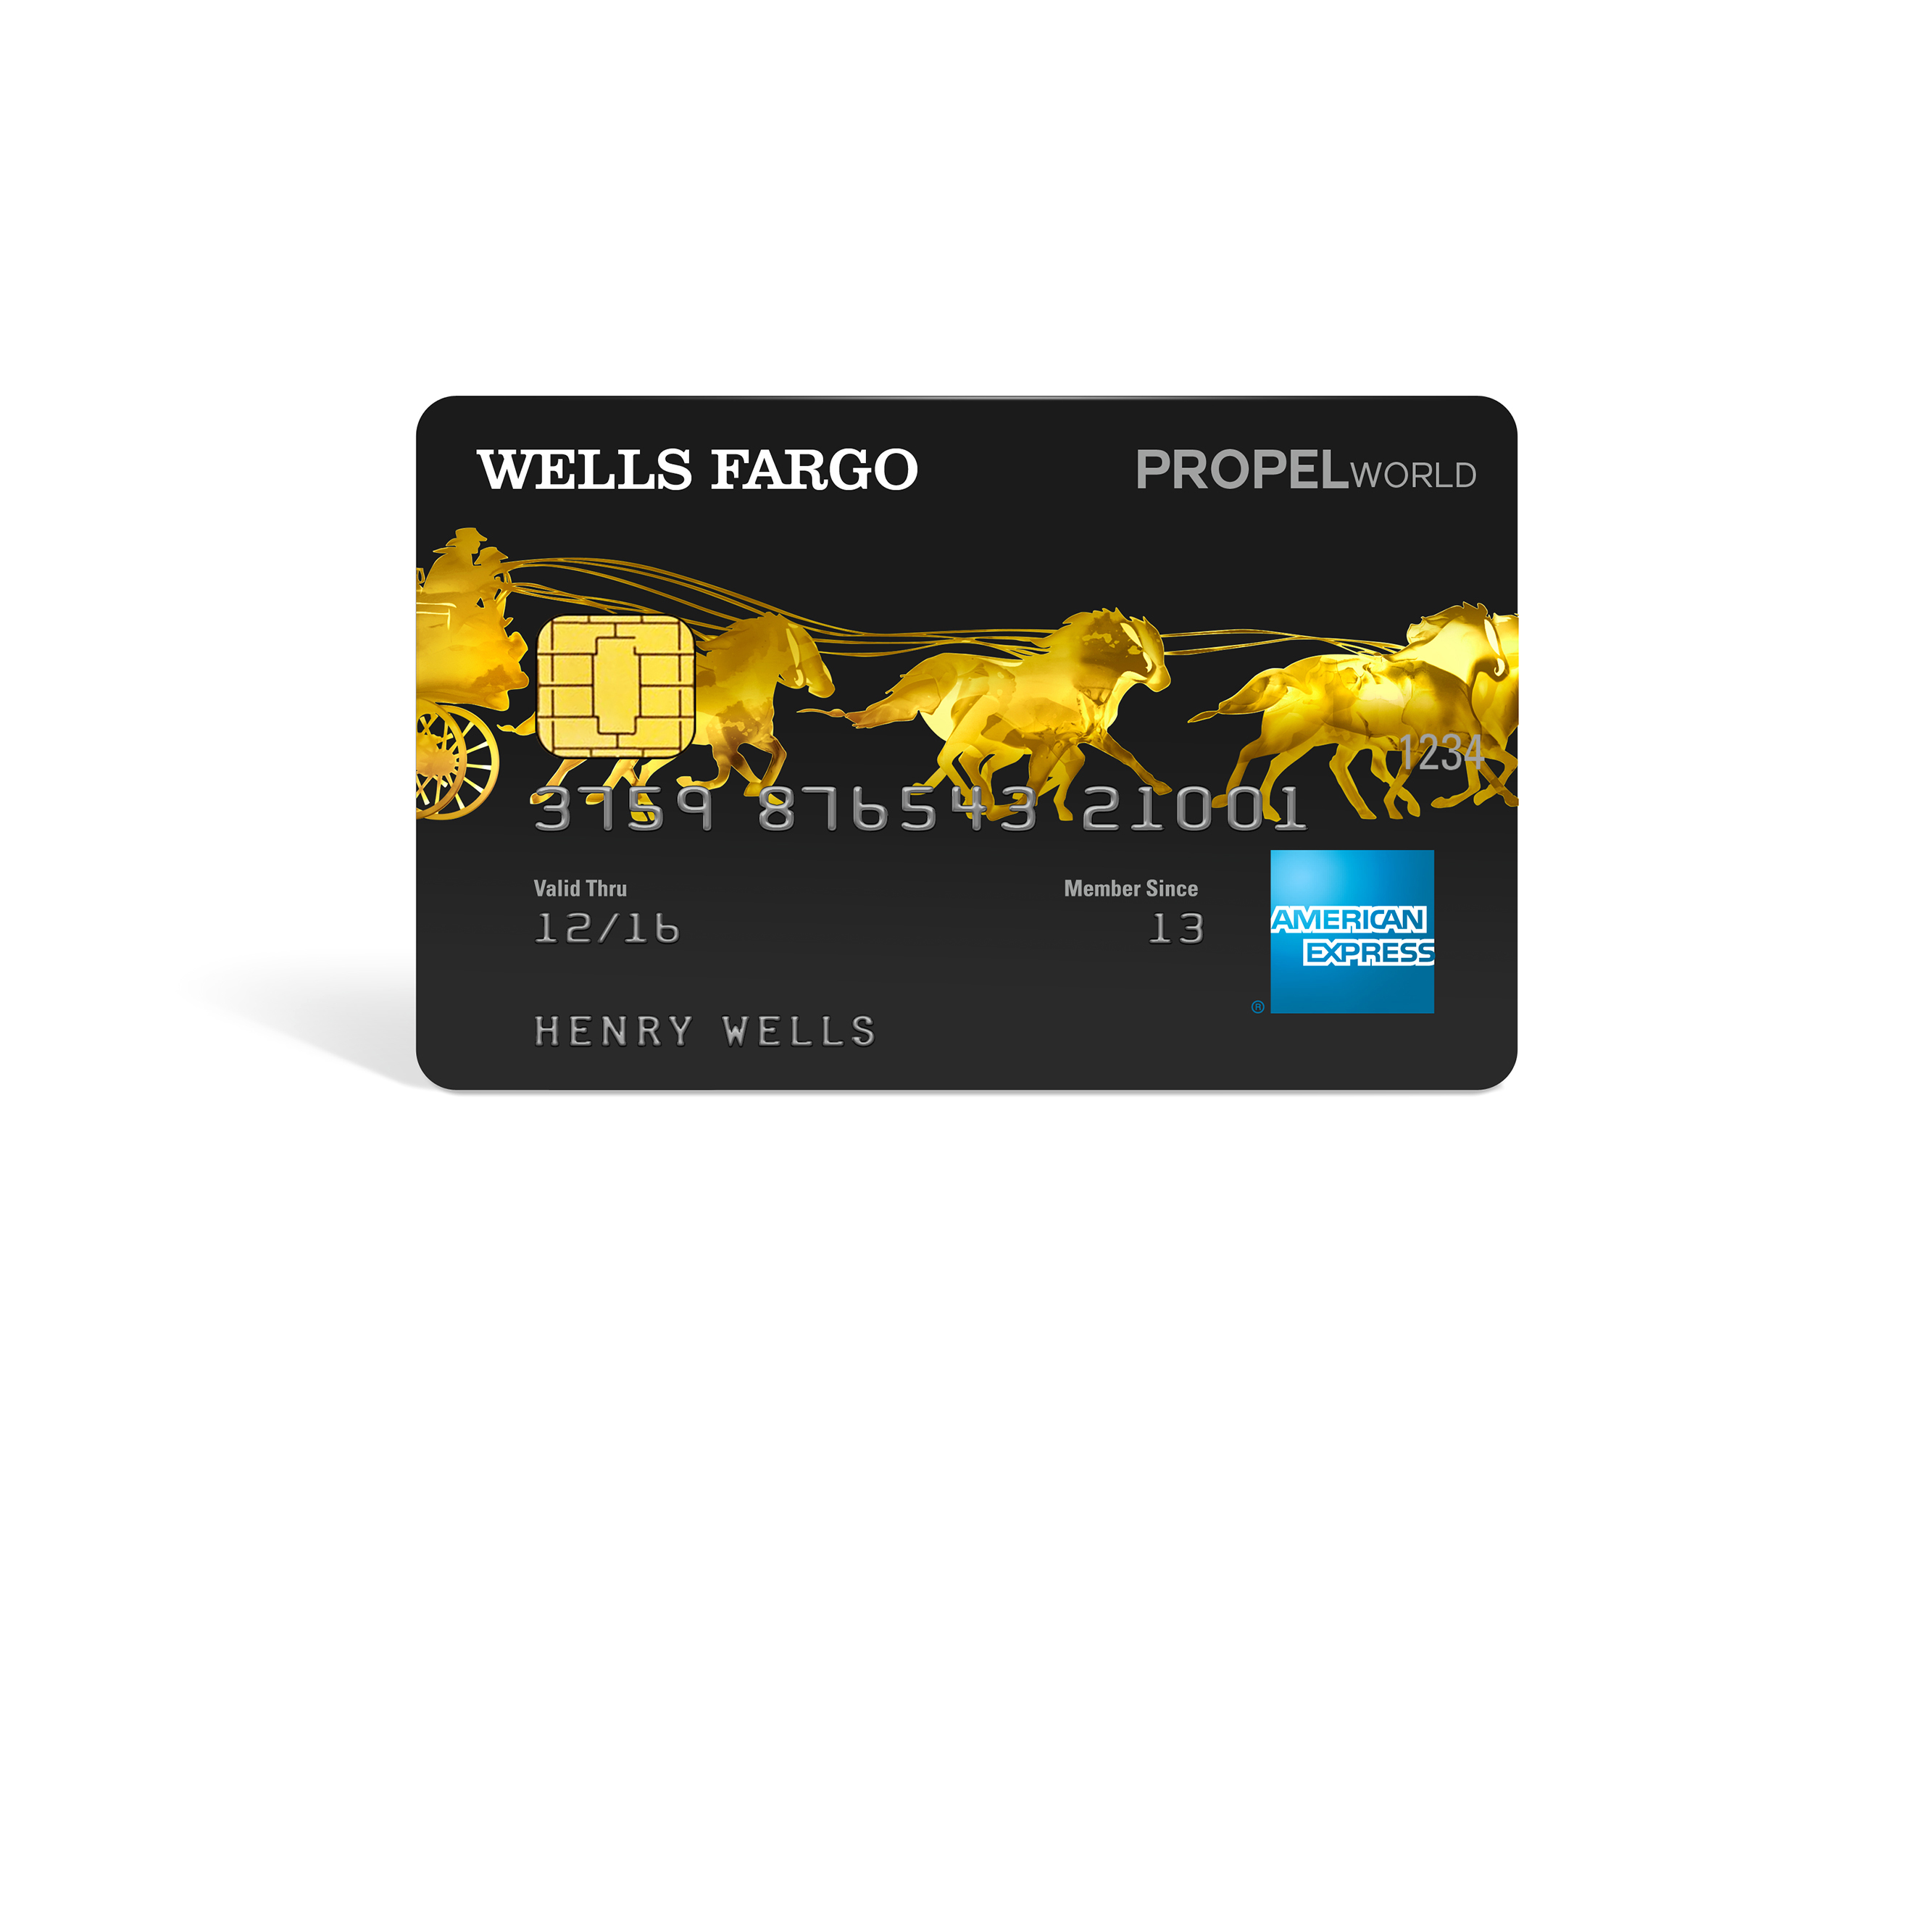 Wells Fargo and American Express Launch Two New Credit Cards with